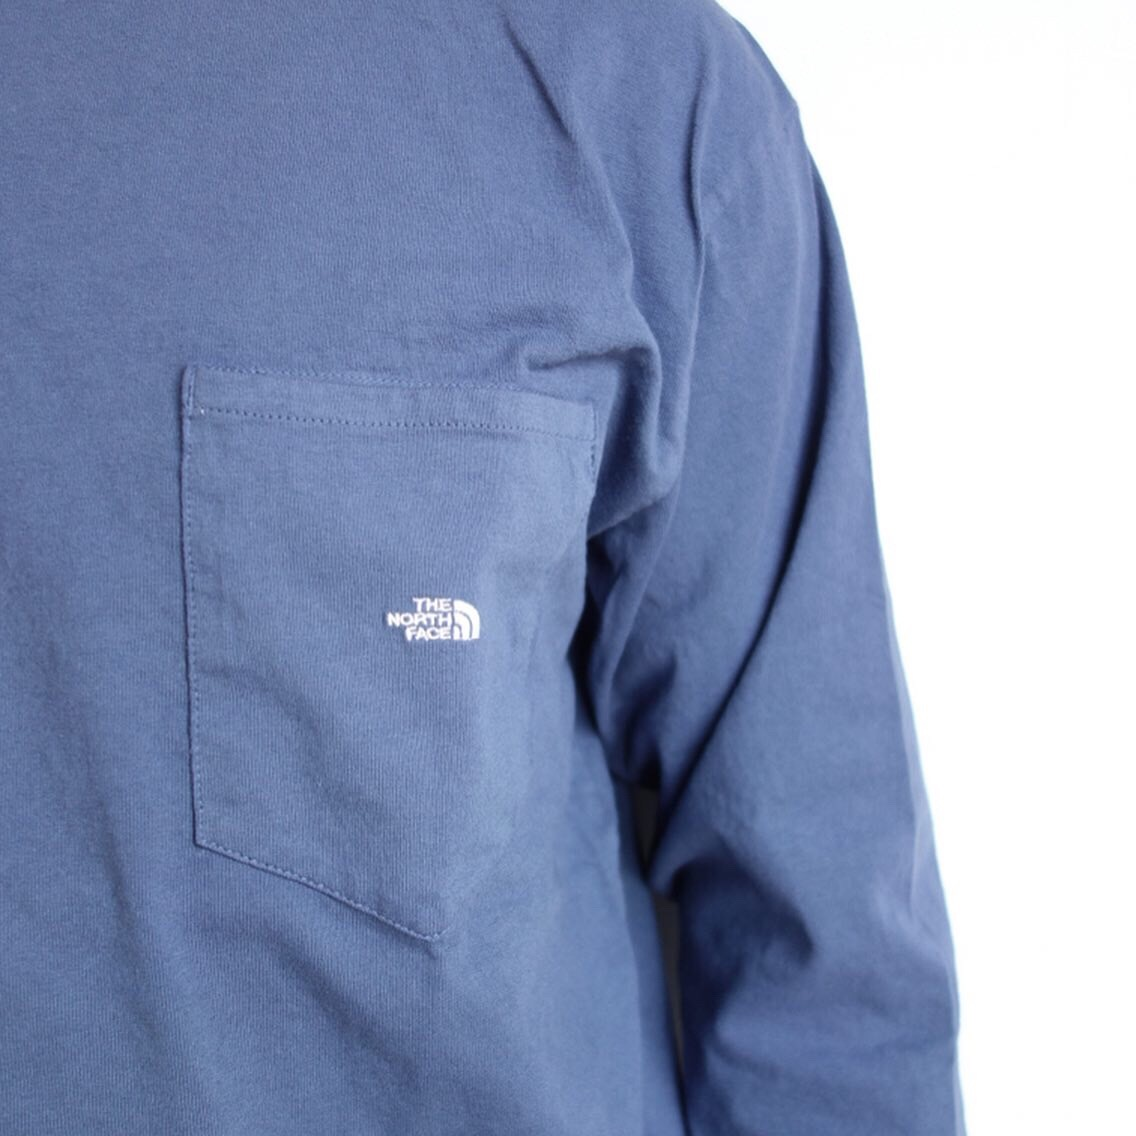 THE NORTH FACE PURPLE LABEL : 7oz L/S Pocket Tee_a0234452_15013327.jpg